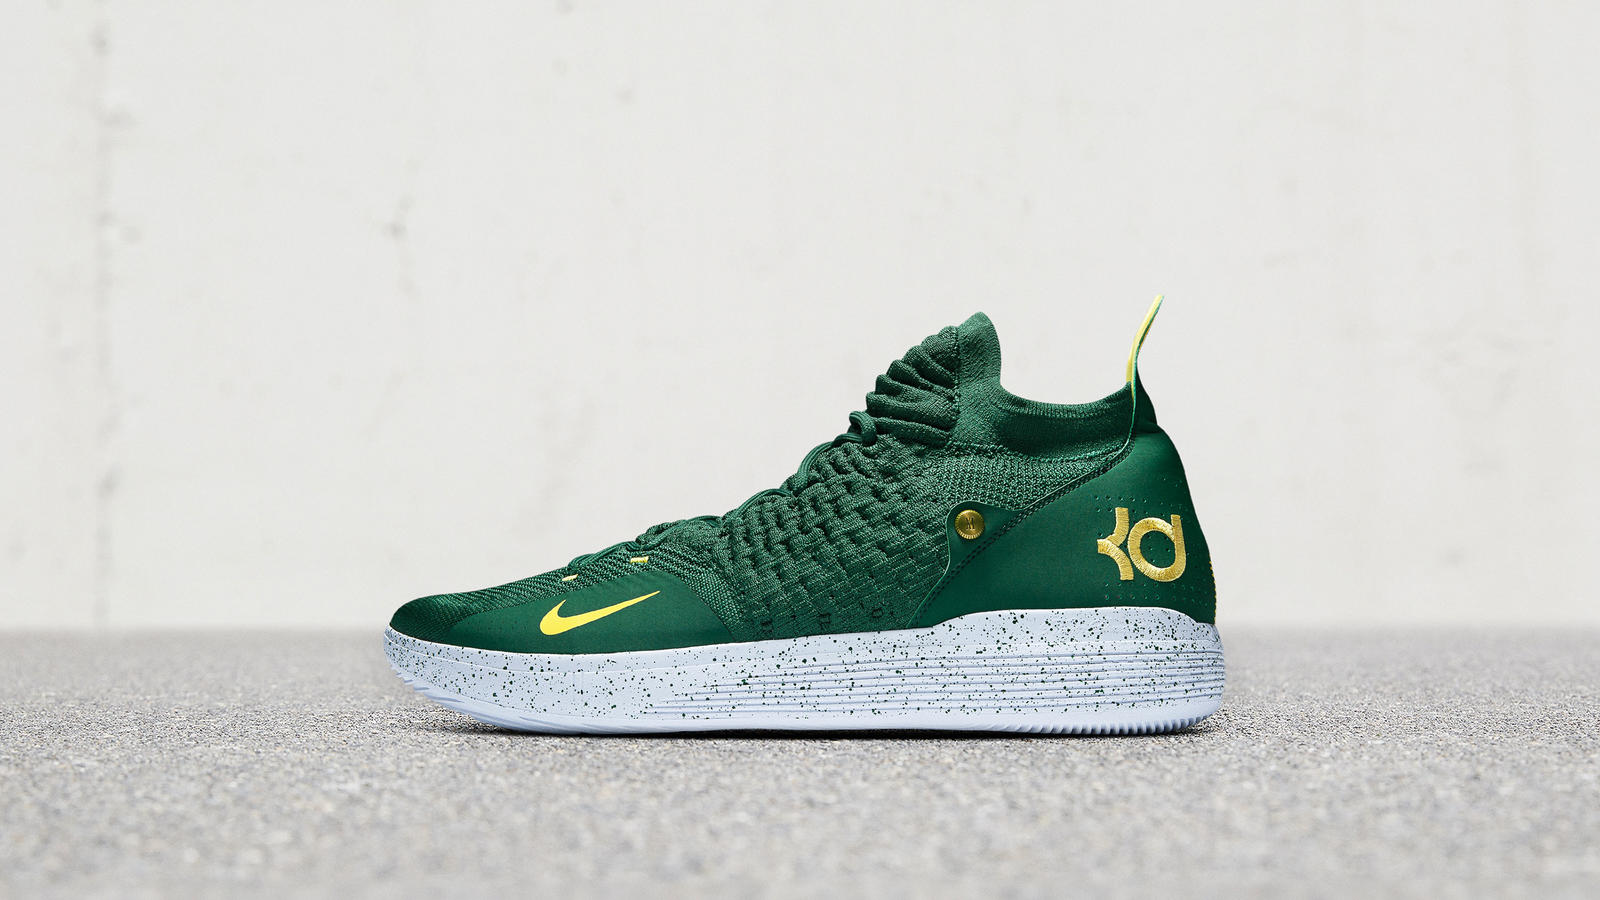 Featuredfootwear kd11 seattlepe 10.5.18 487 hd 1600